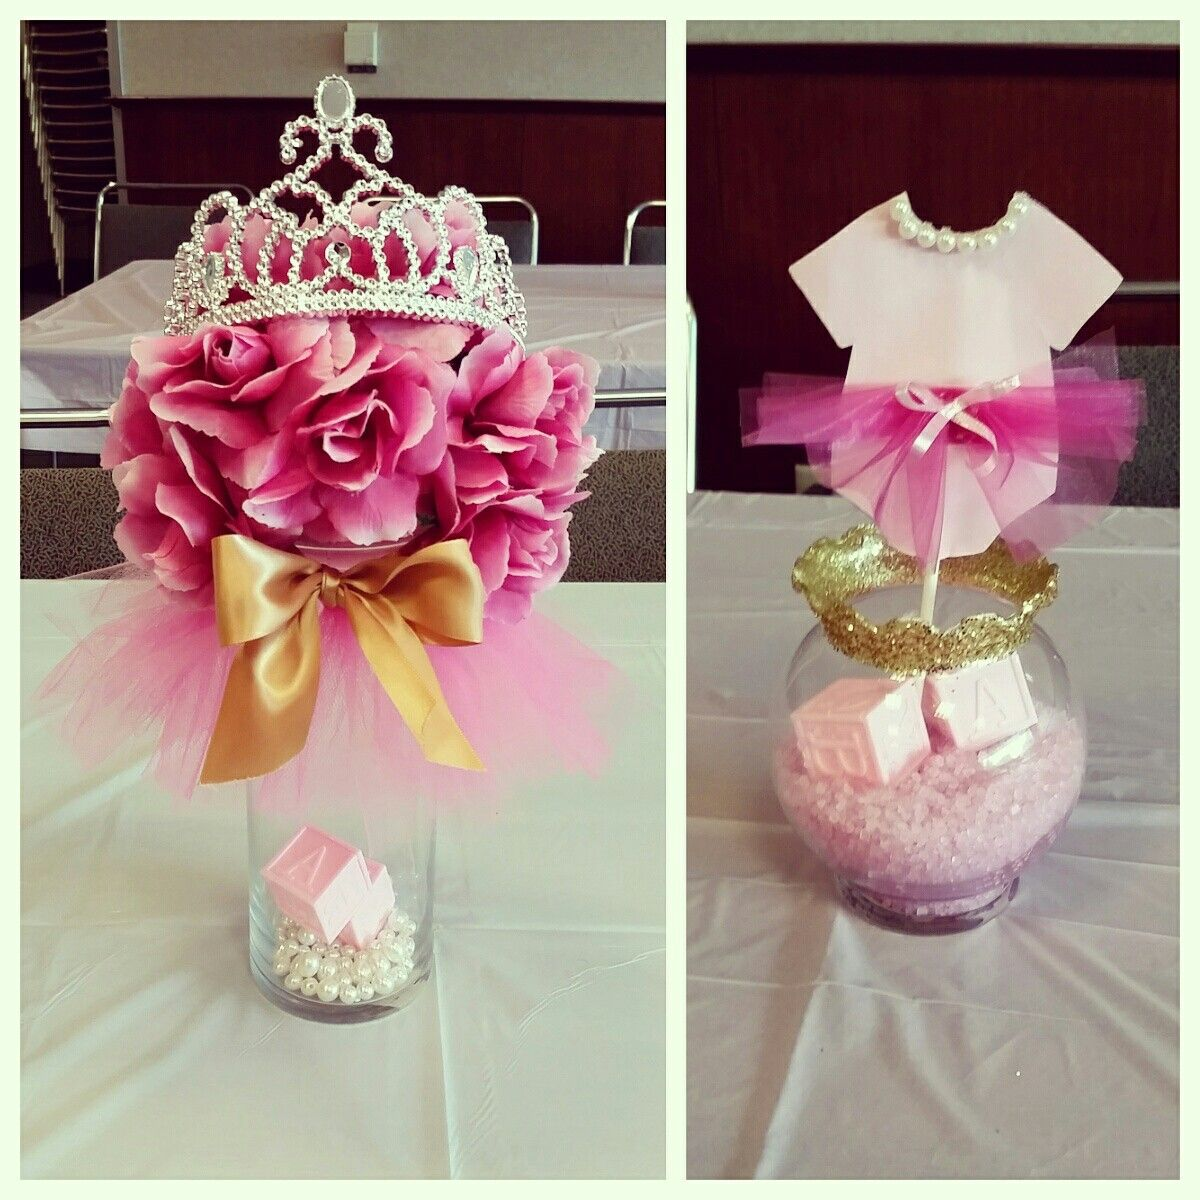 Baby shower centerpieces | Baby shower Stuff | Pinterest | Baby ...